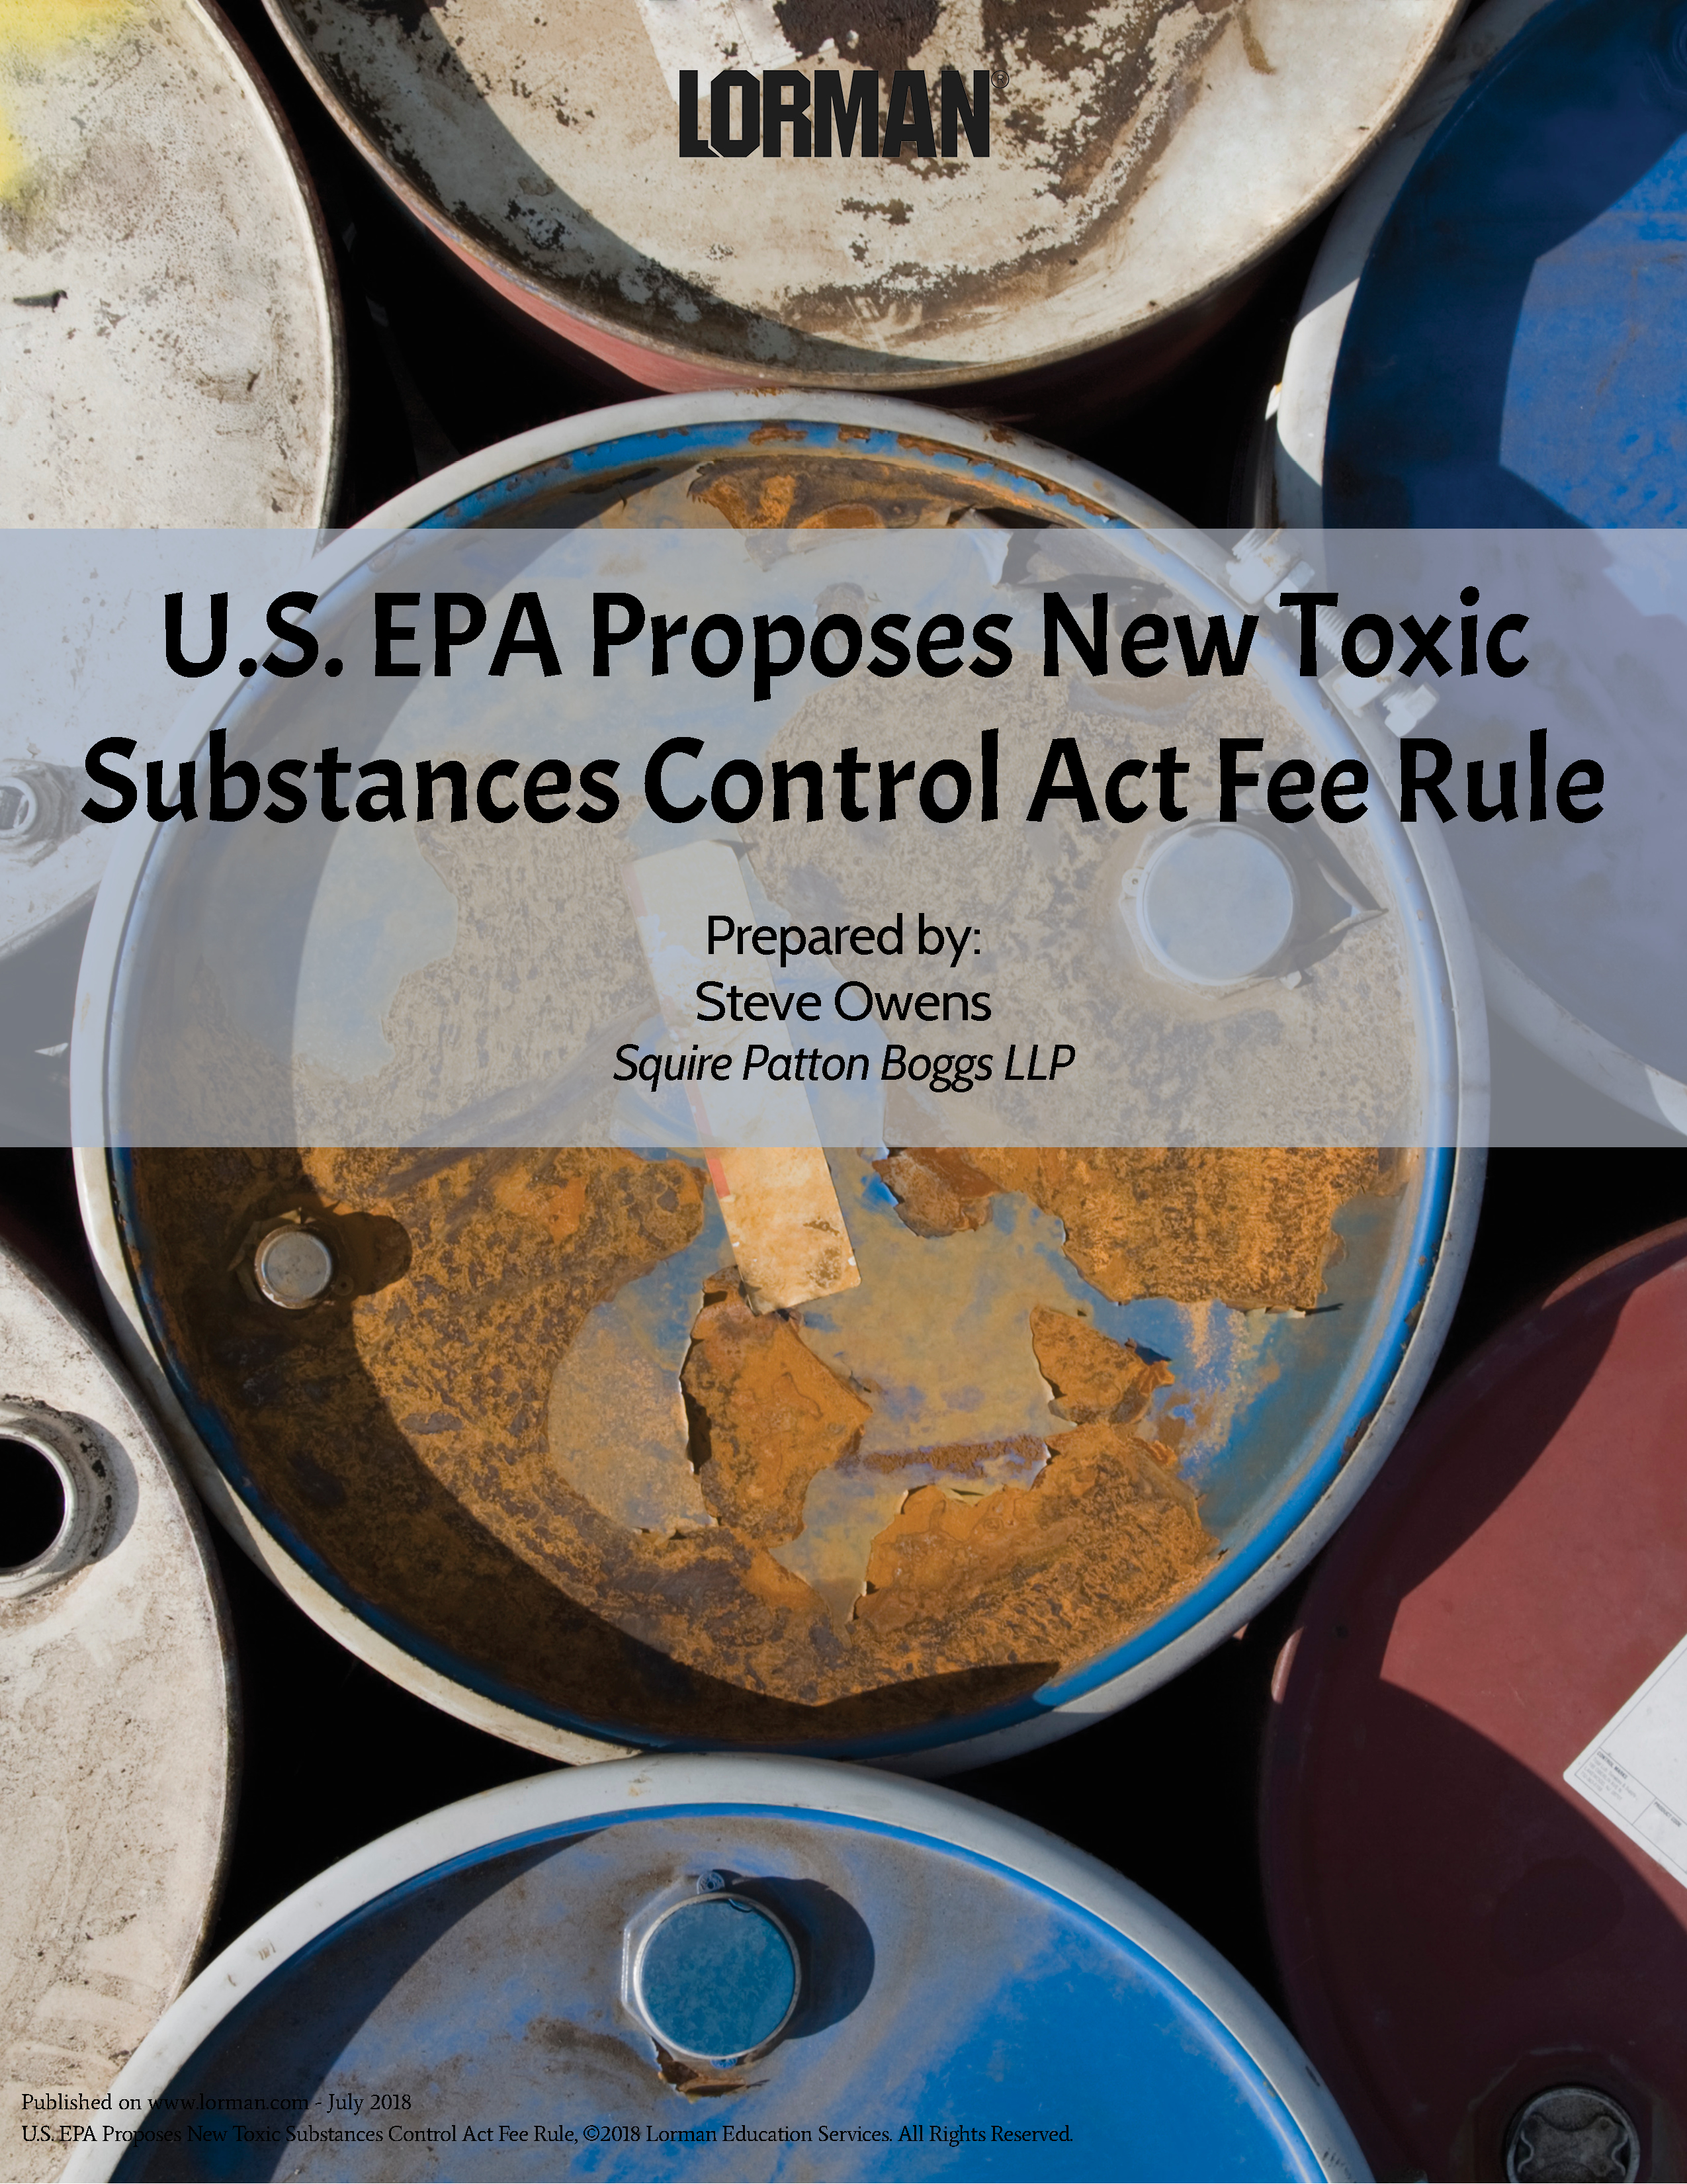 U.S. EPA Proposes New Toxic Substances Control Act Fee Rule